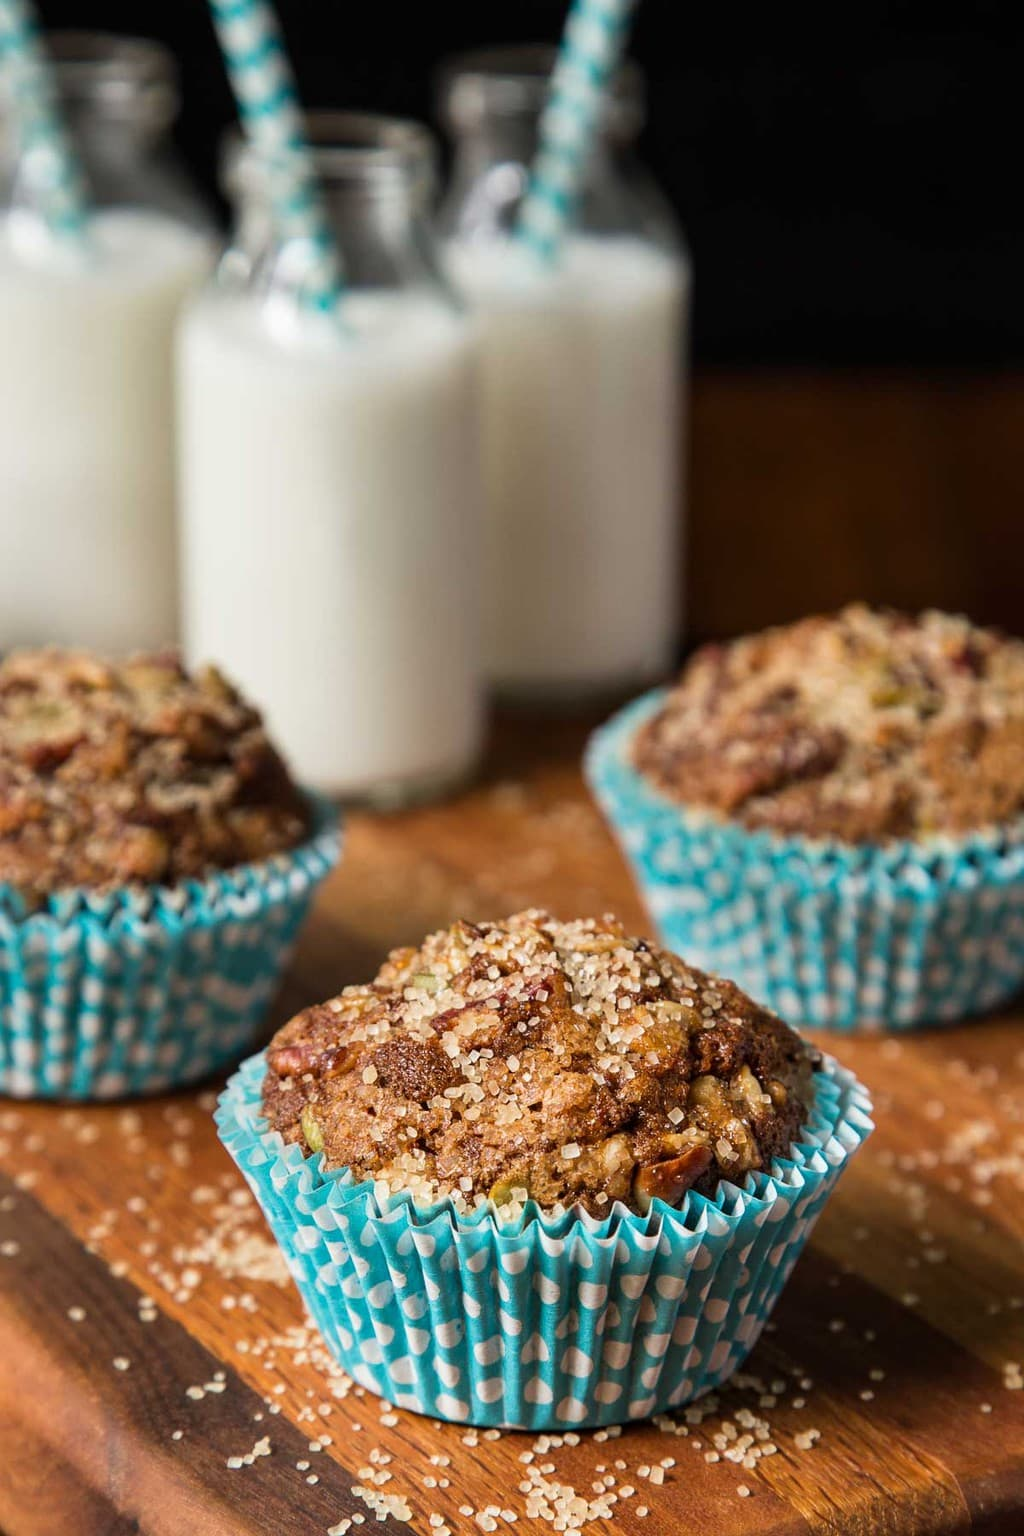 Vertical photo of Zucchini Morning Glory Muffins on a wood cutting board with small bottles of milk in the background.